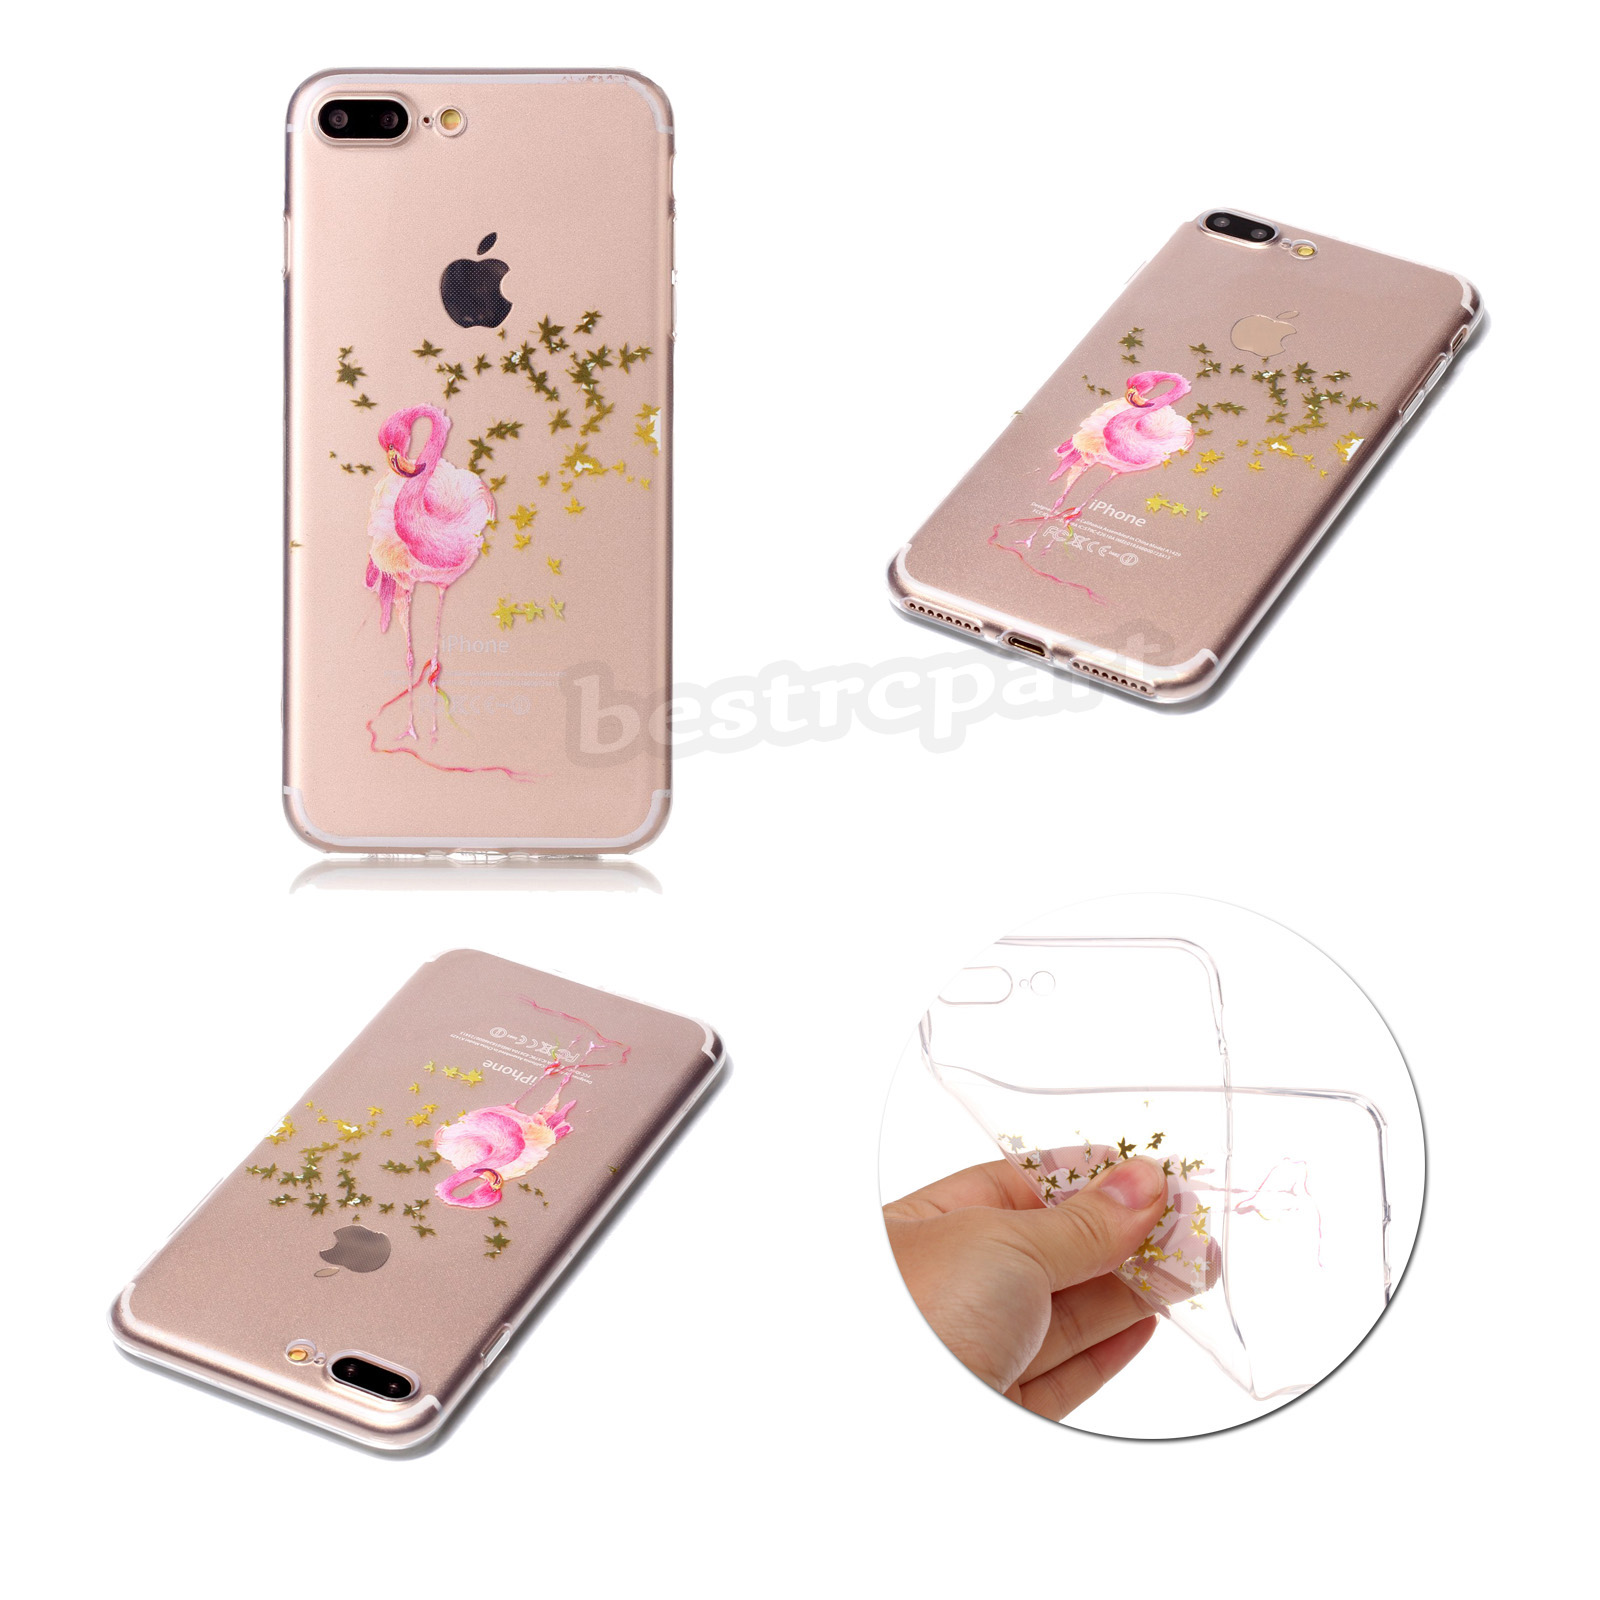 Rubber Pattern Soft TPU Silicone Back Case Cover For iPhone 5S 6 6S 7 Plus SE eBay